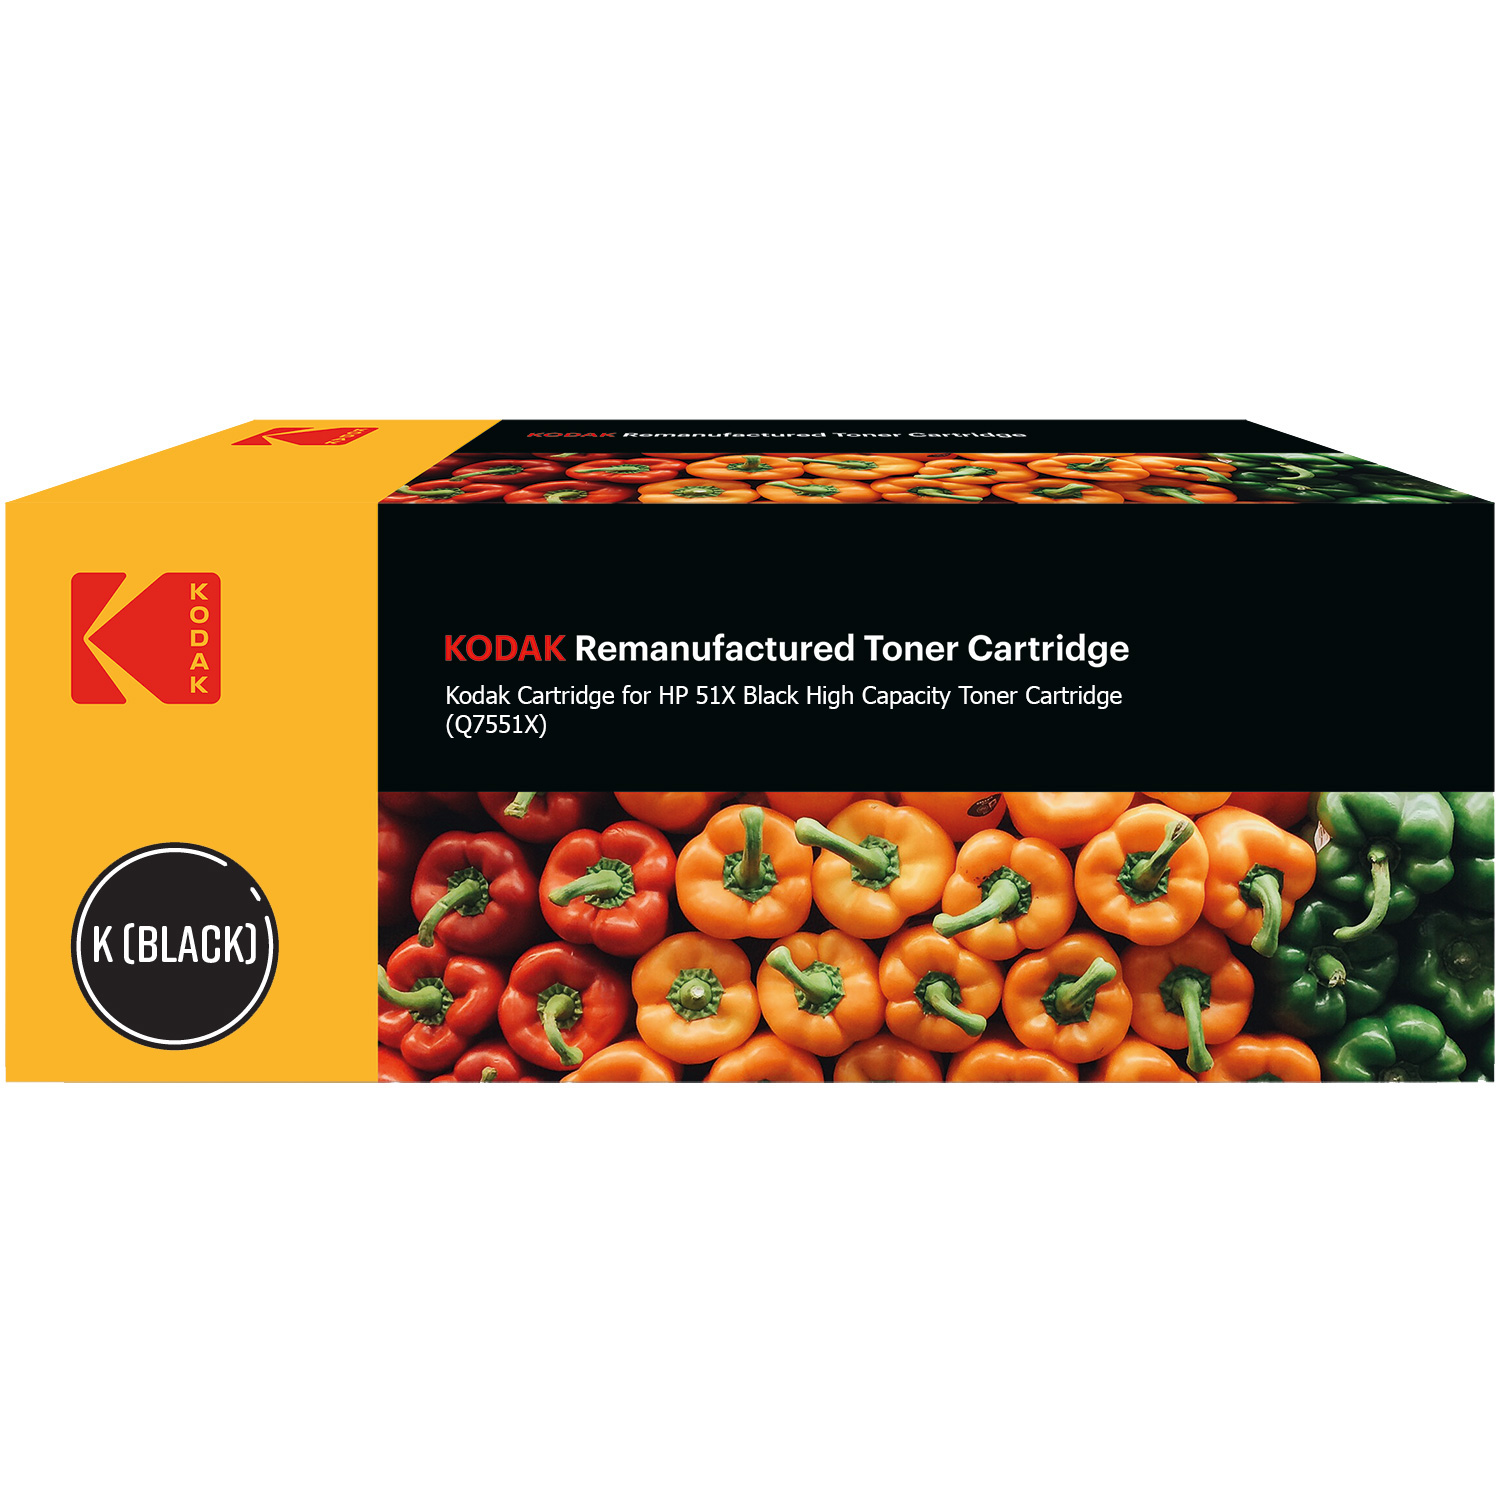 Ultimate HP 51X Black High Capacity Toner Cartridge (Q7551X) (Kodak KODQ7551X)